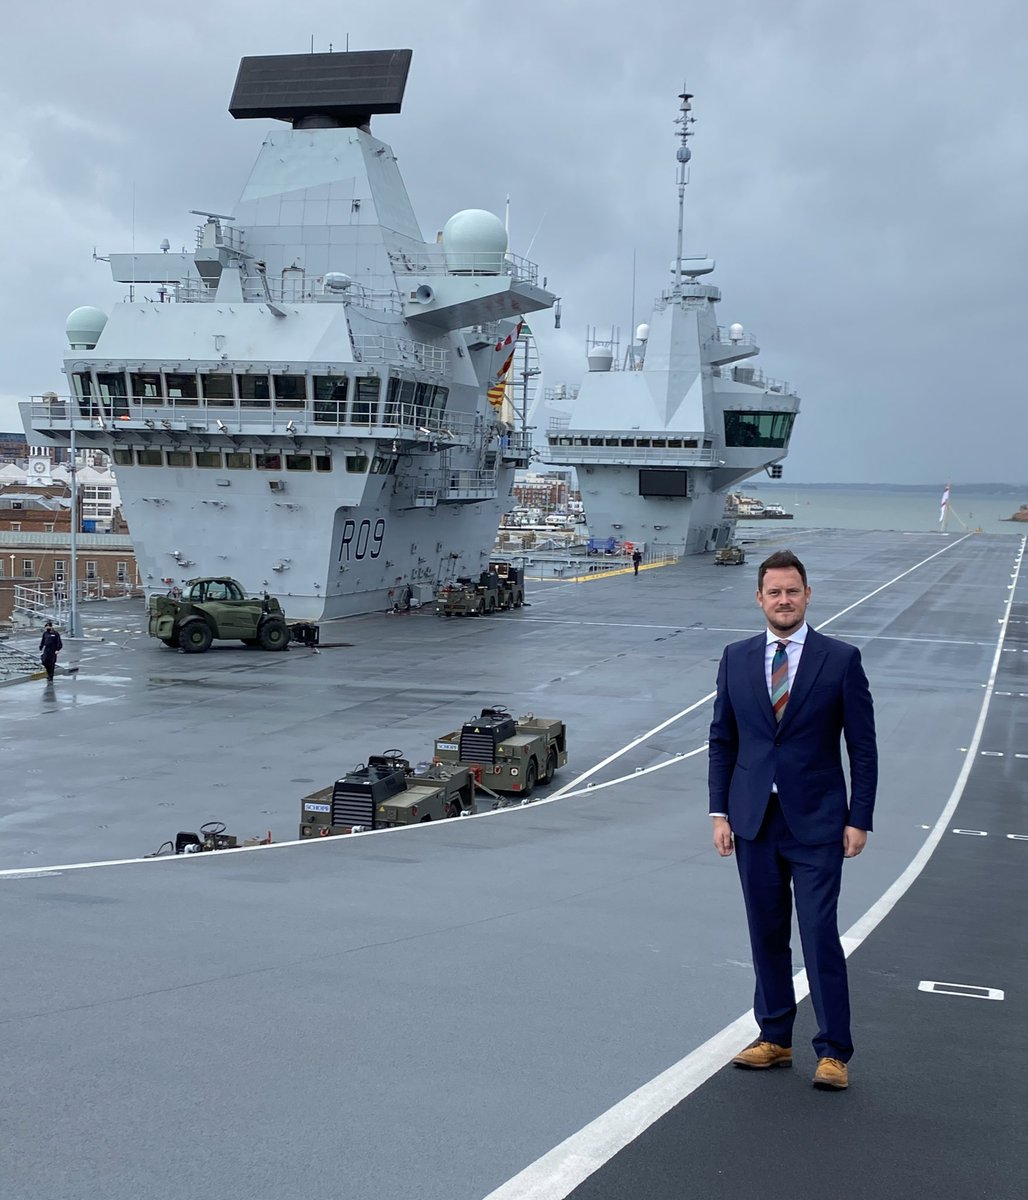 The QE class carriers showcase our naval capability, great skill of our shipbuilders and are a source of great pride for #Portsmouth and our nation. A privilege to meet @HMSPWLS ship's company for a tour with @CommonsPAC today. Proud the carriers are based in our constituency https://t.co/ls89sfG0IE